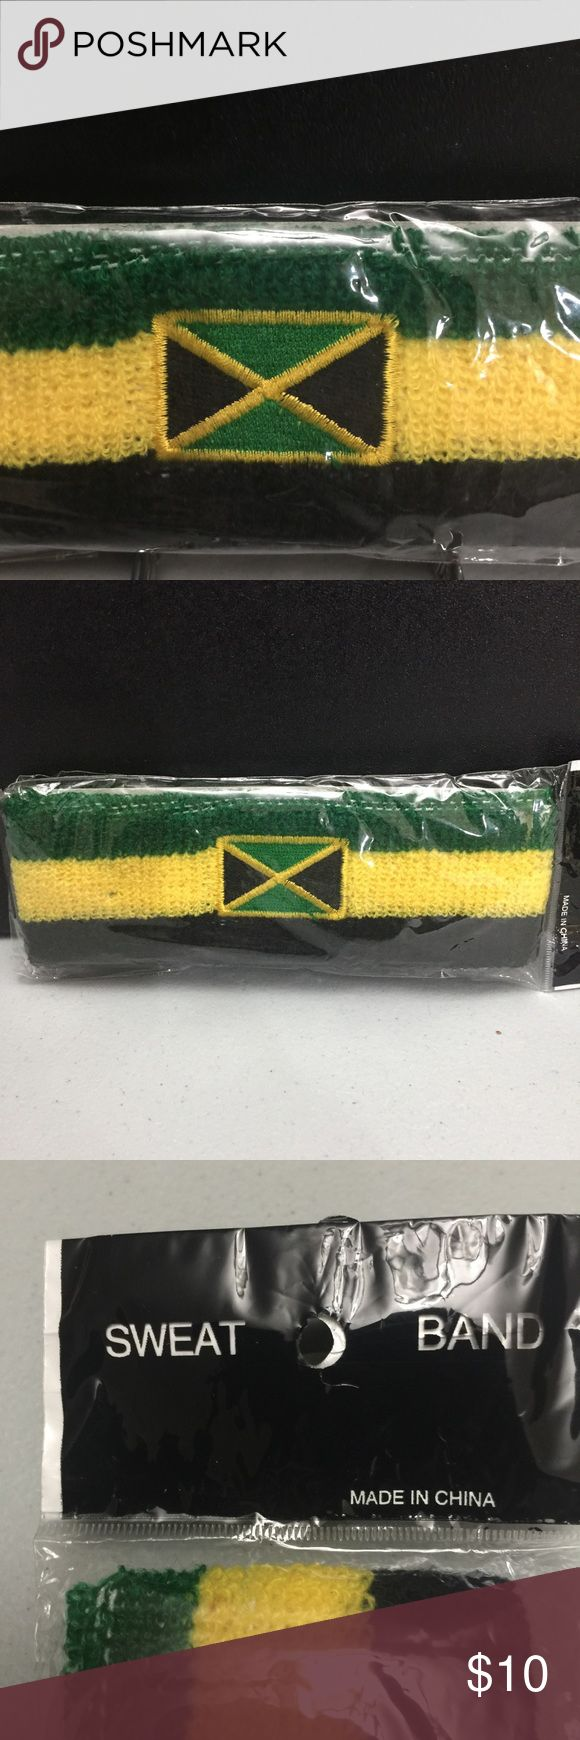 Jamaican Sweat Band Jamaican Flag Sweat Band, can be worn for fashion or to absorb your sweat from walking, jogging or any sporting activity. Stretchable fabric... one size fits most Head. New in bag. Check out other Jamaican or Rasta clothing and accessories from my closet. Share the Love ❤️ Jamaica Accessories